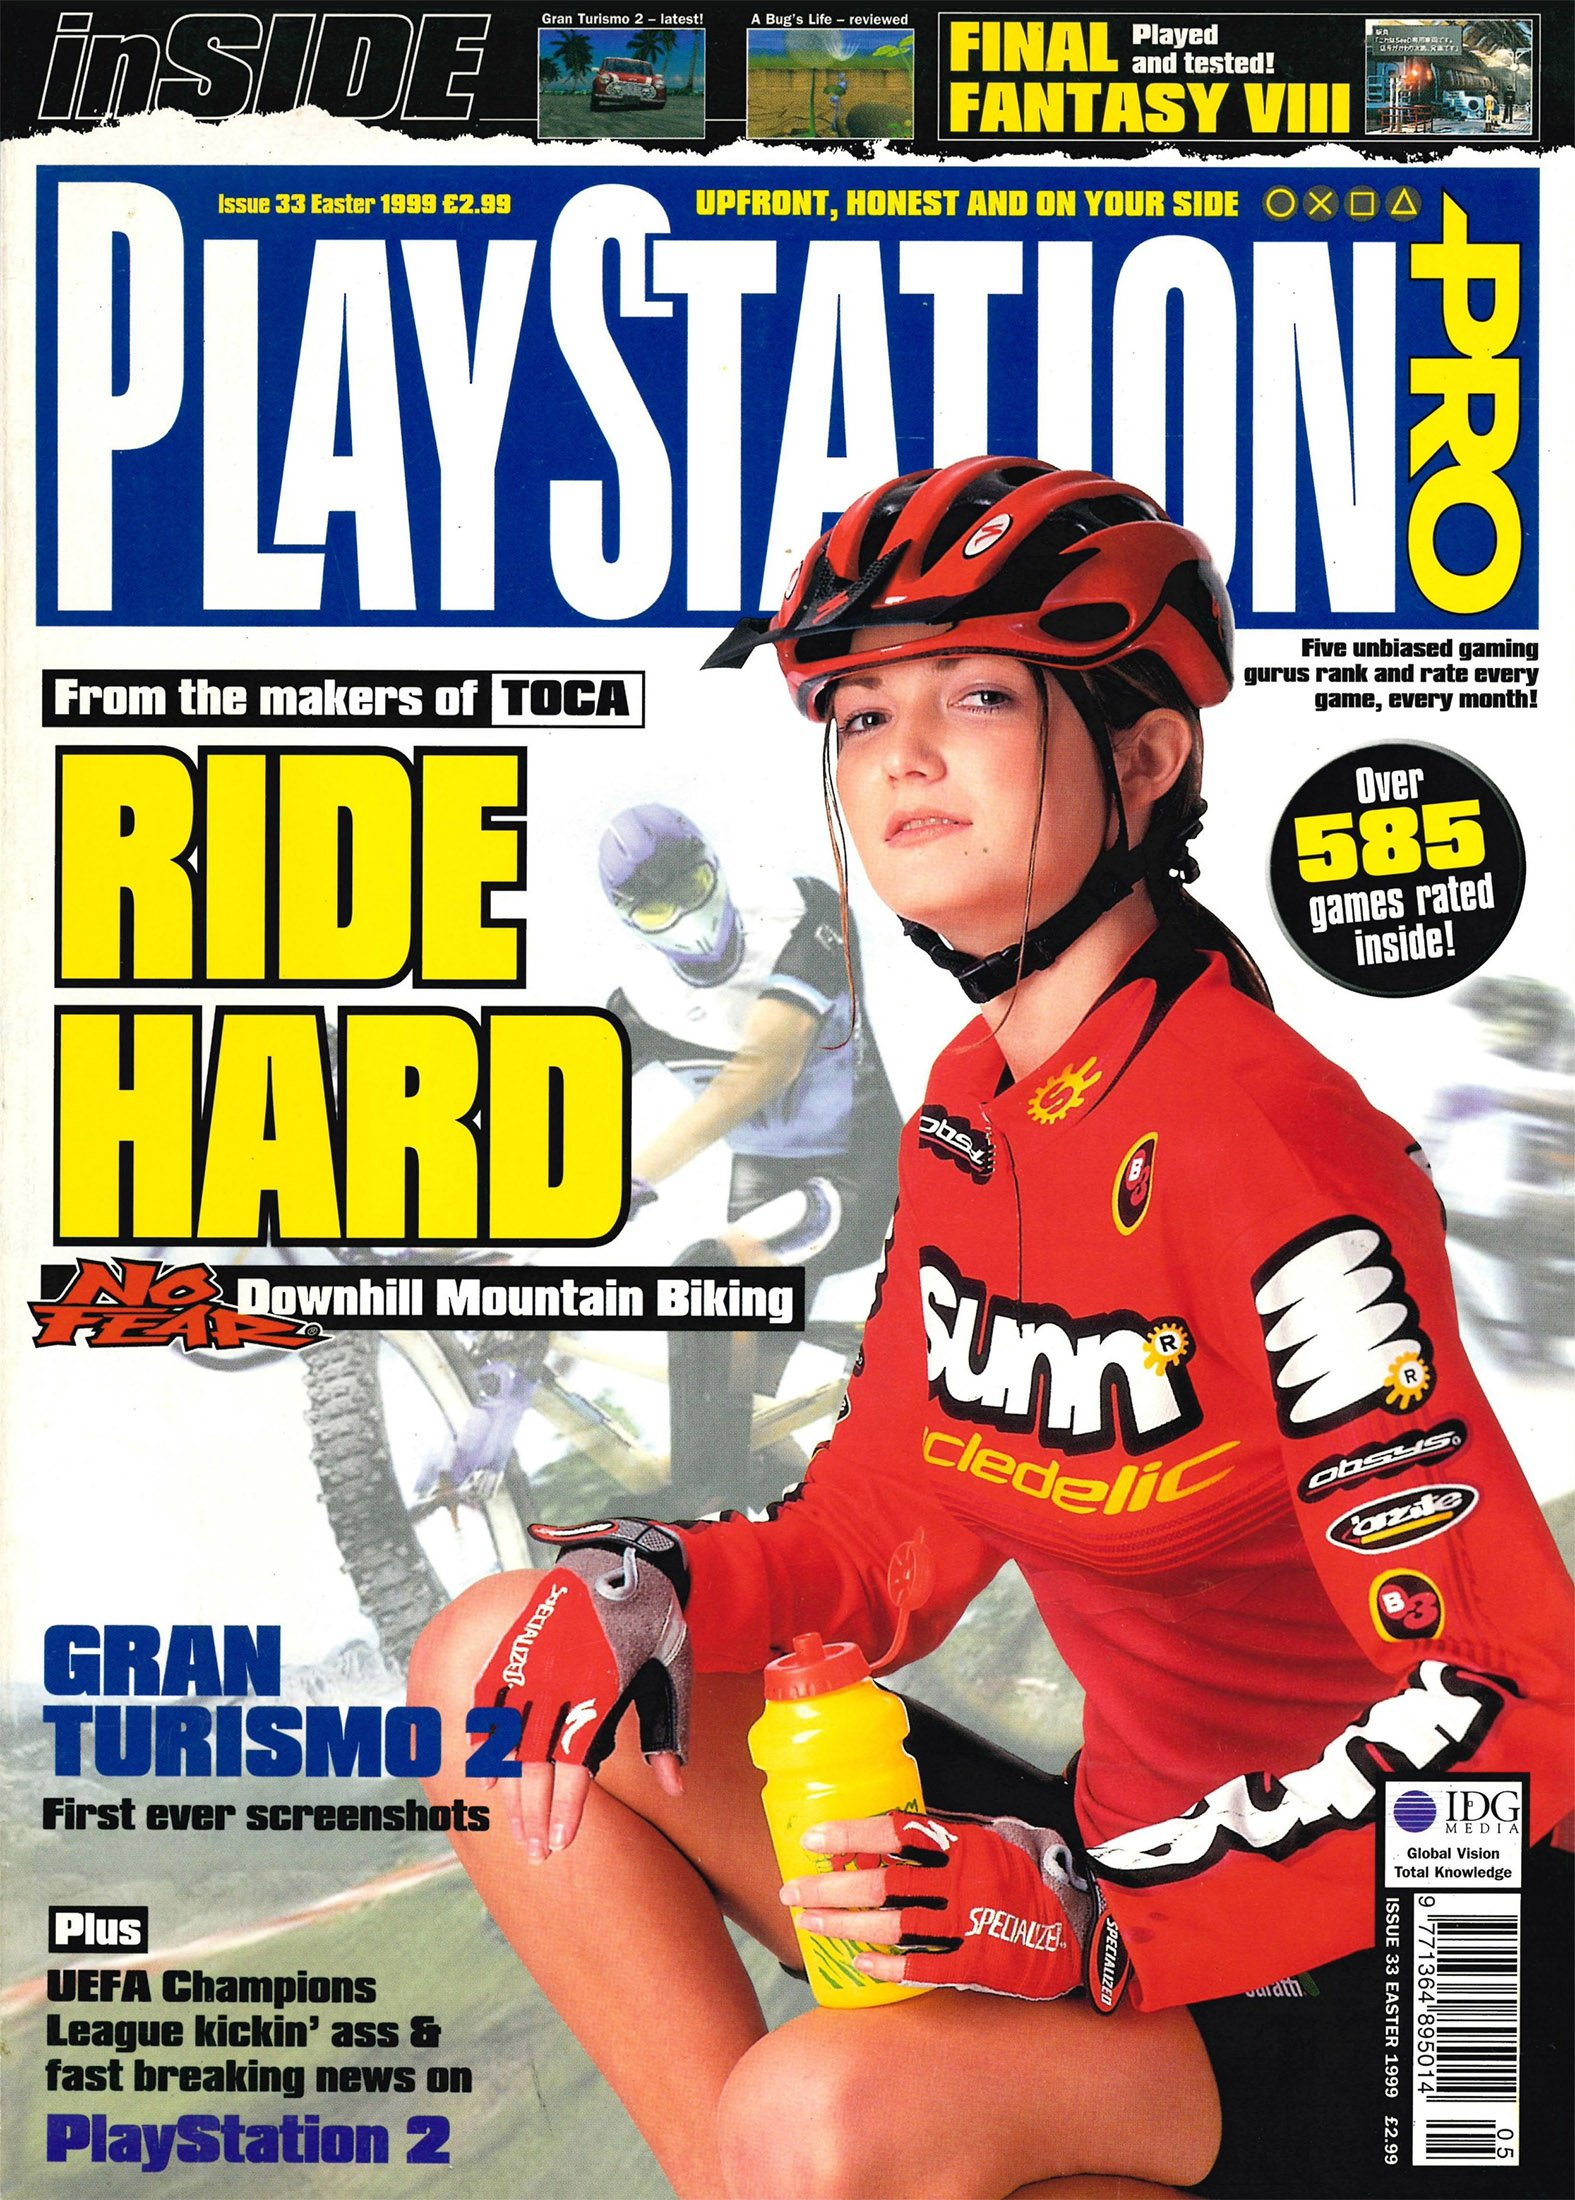 PlayStation Pro Issue 33 (Easter 1999)